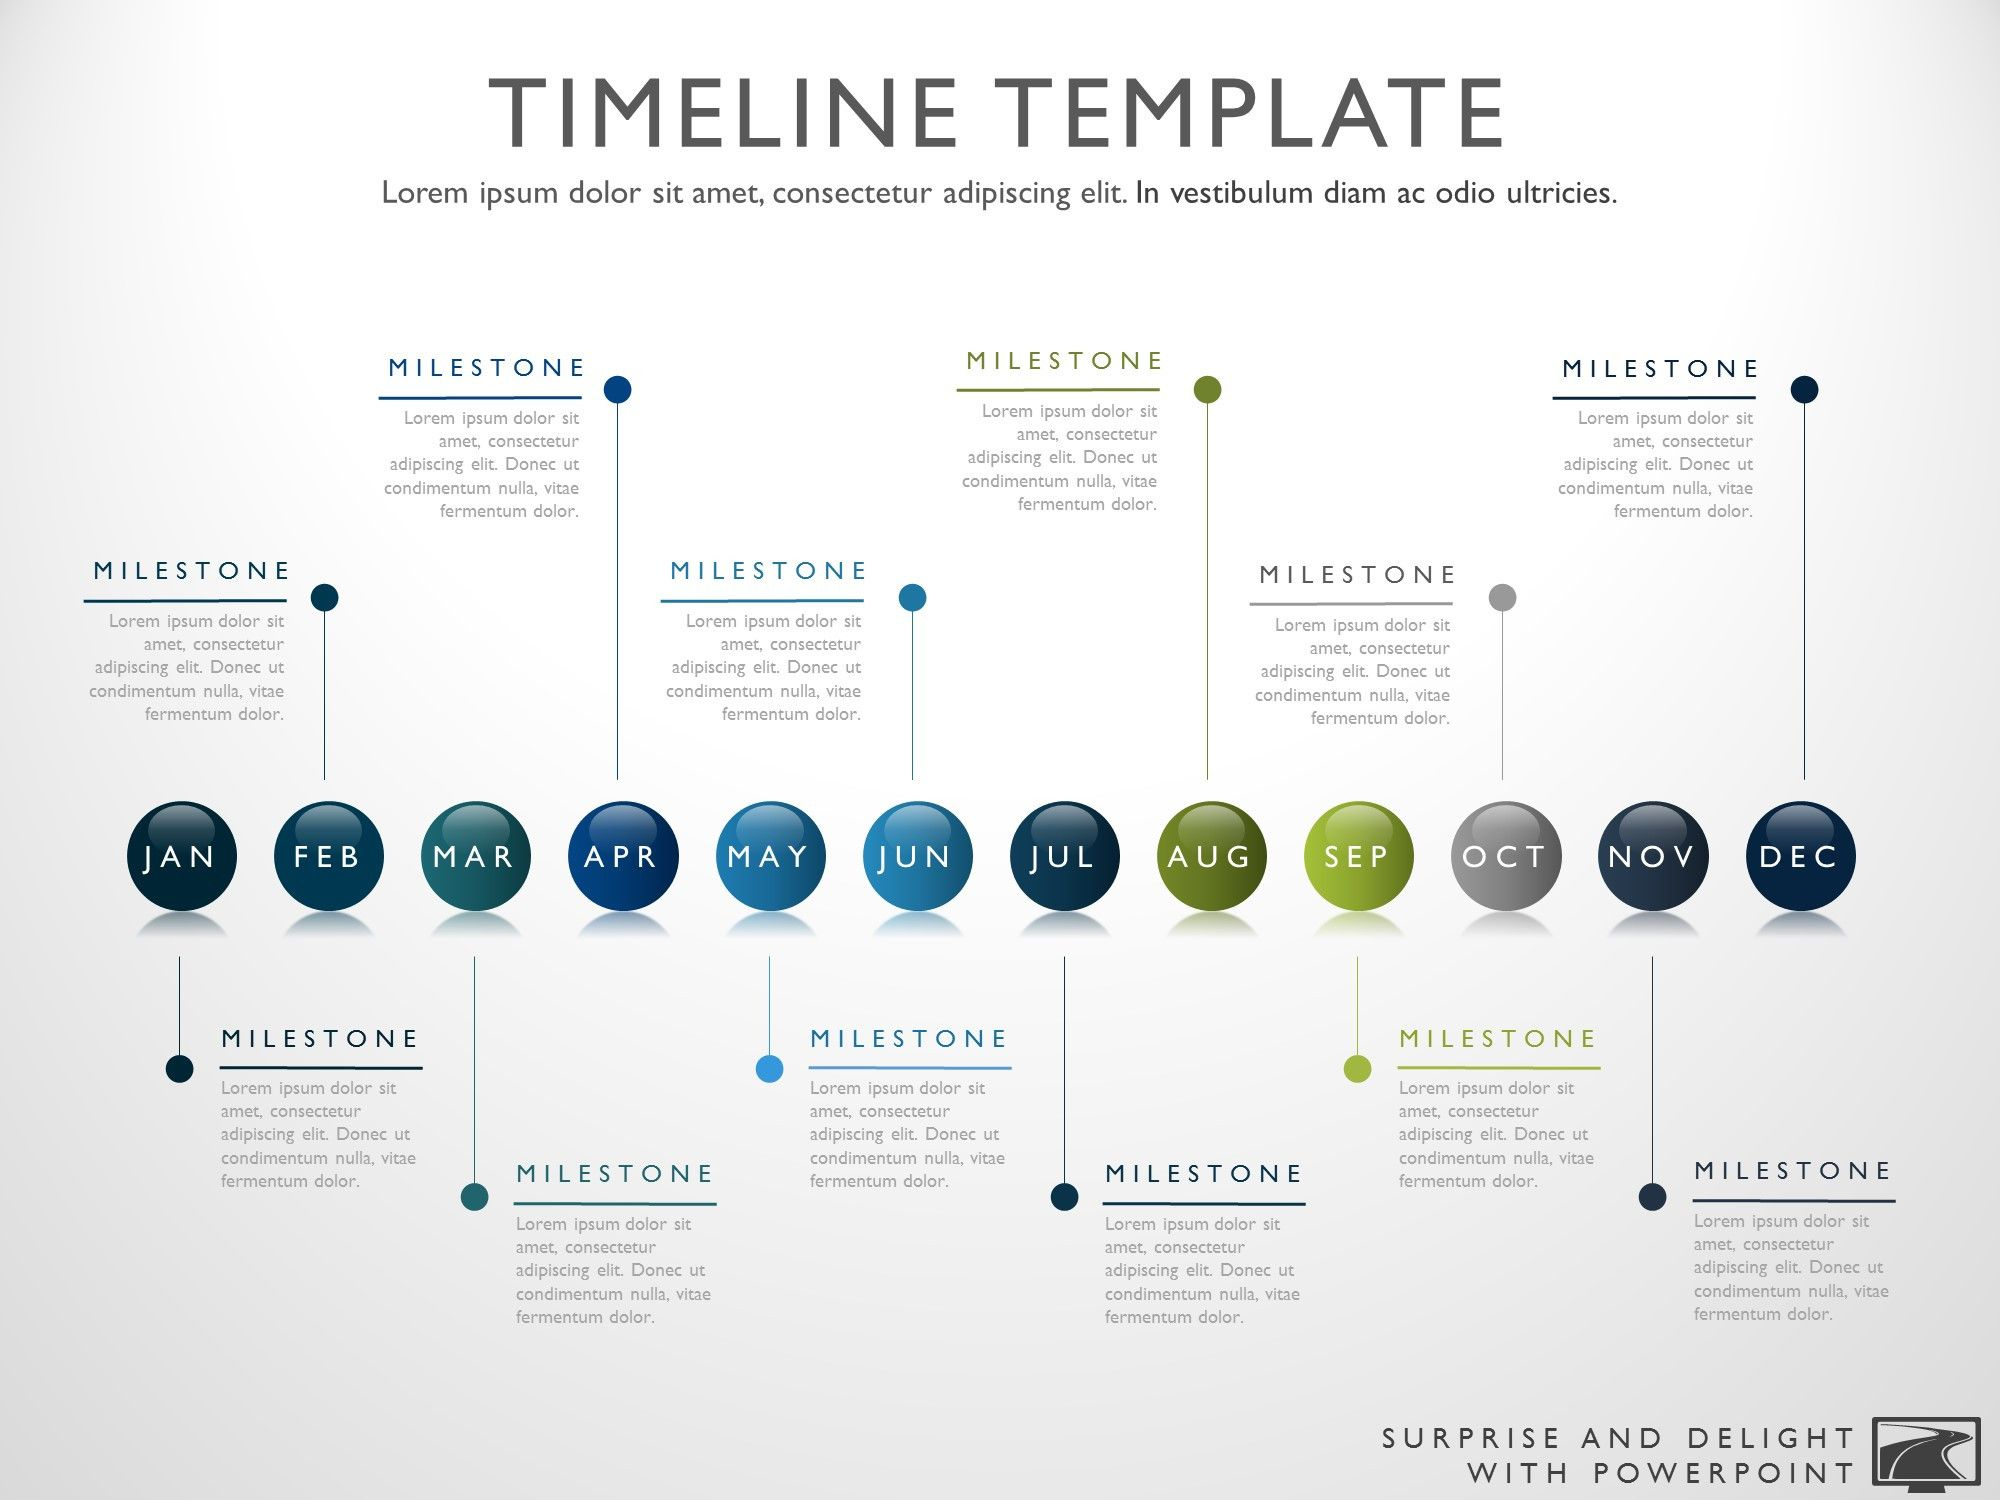 Timeline Template My Product Roadmap Remodeling Tools - It project timeline template